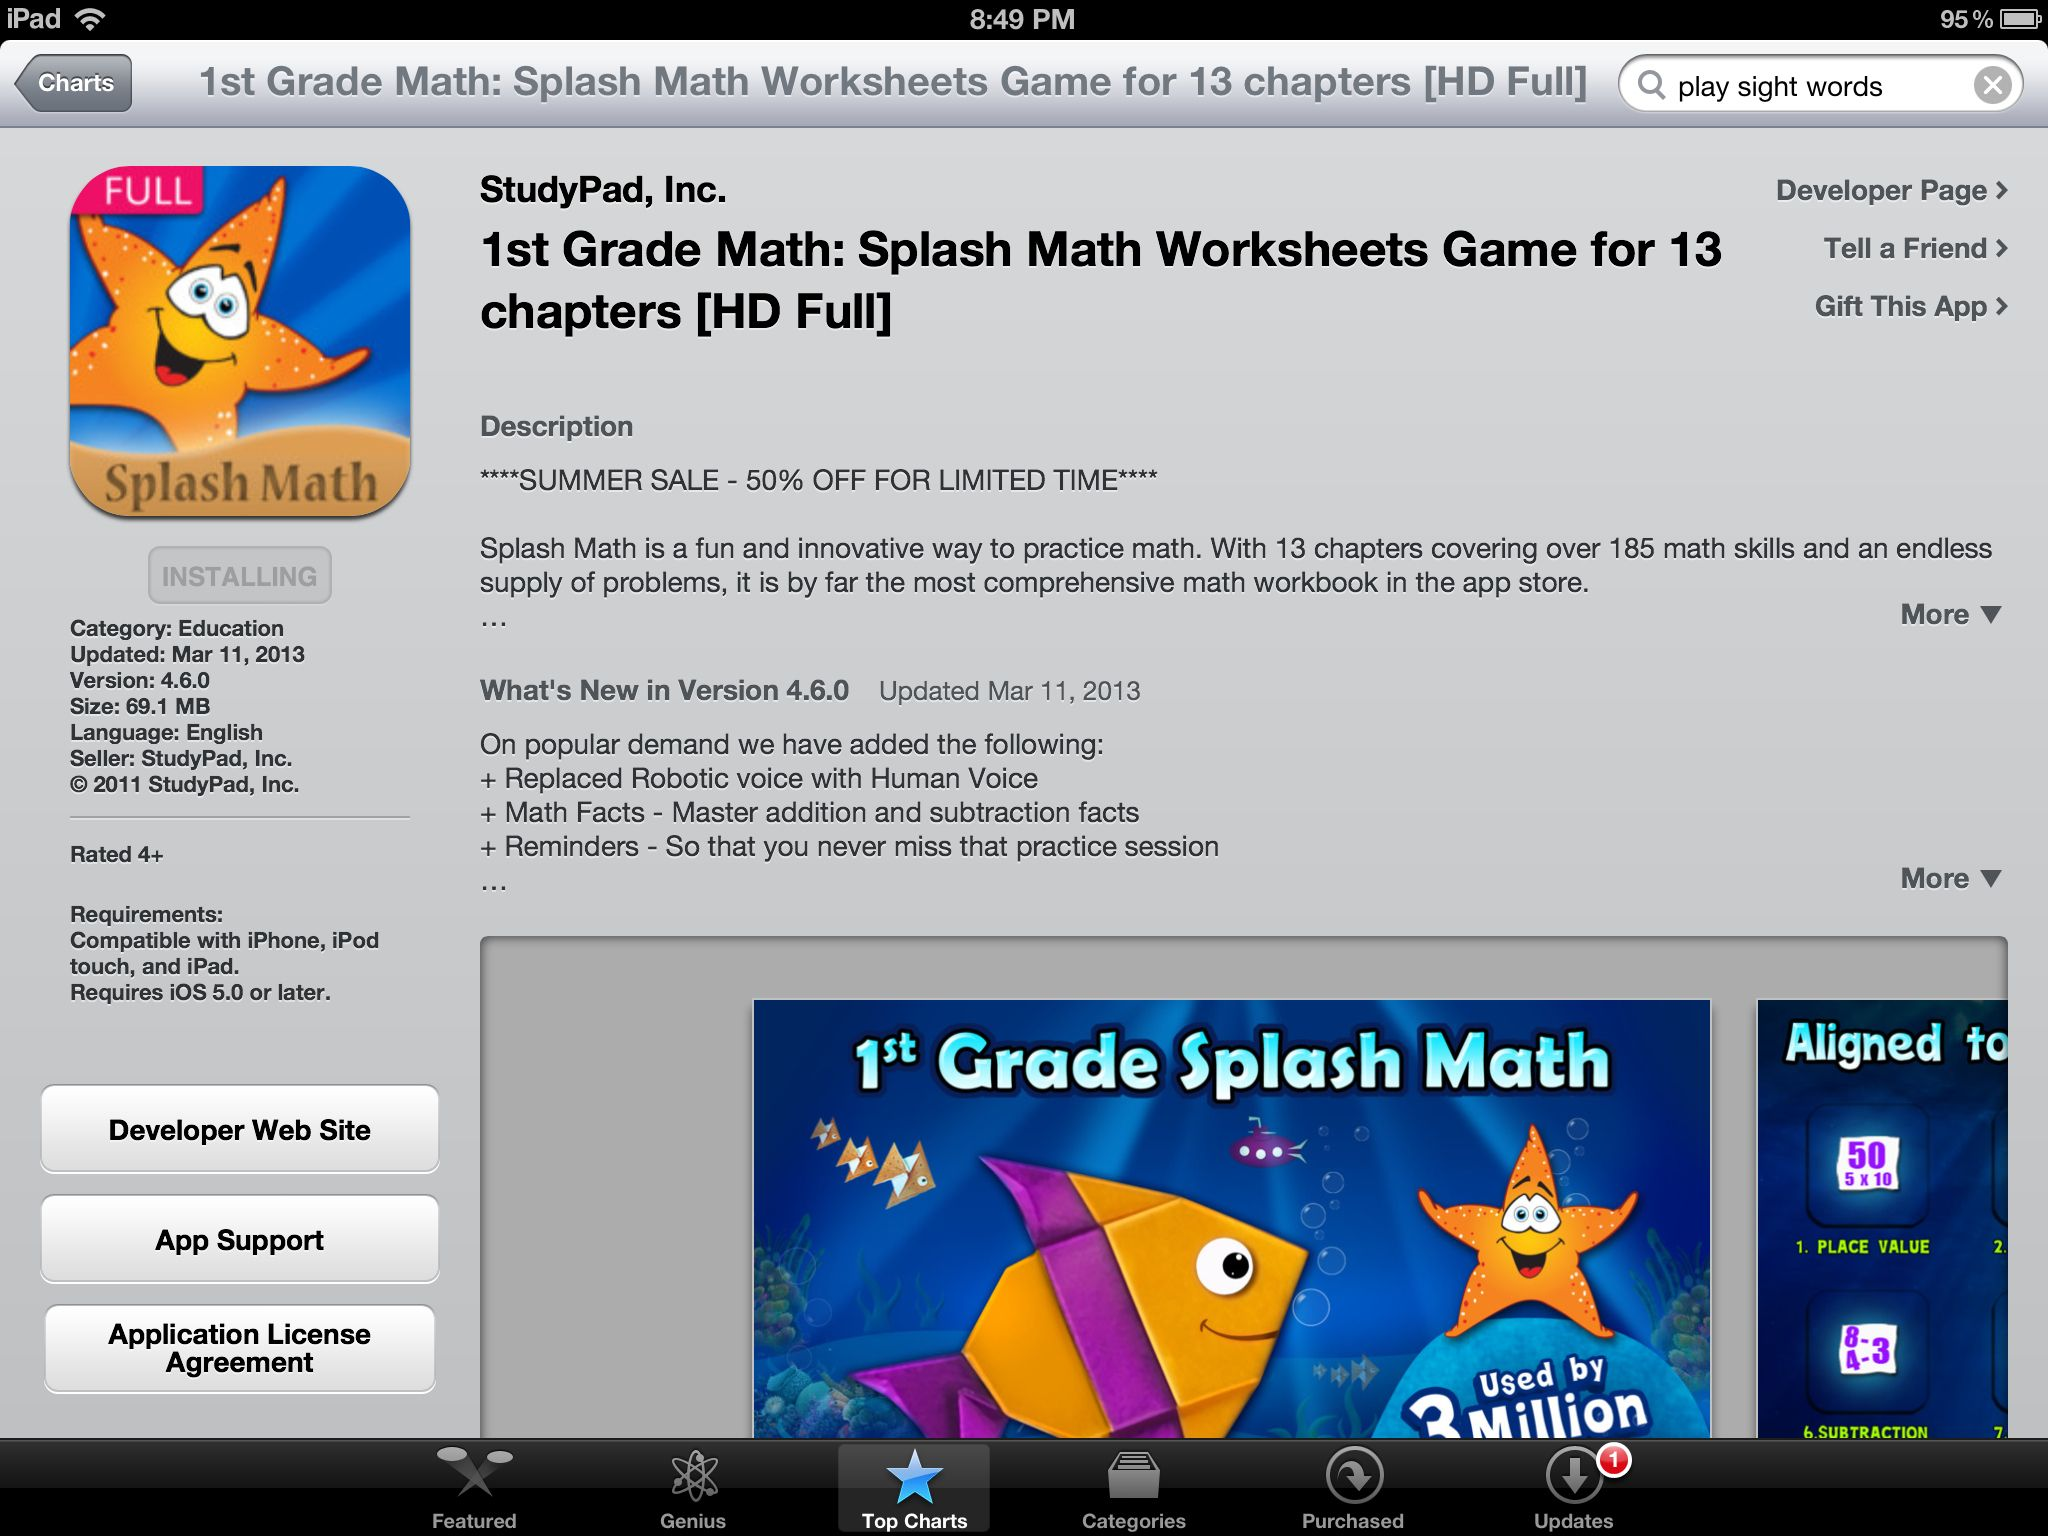 Super App For 1st Graders If You Have An Ipad In The